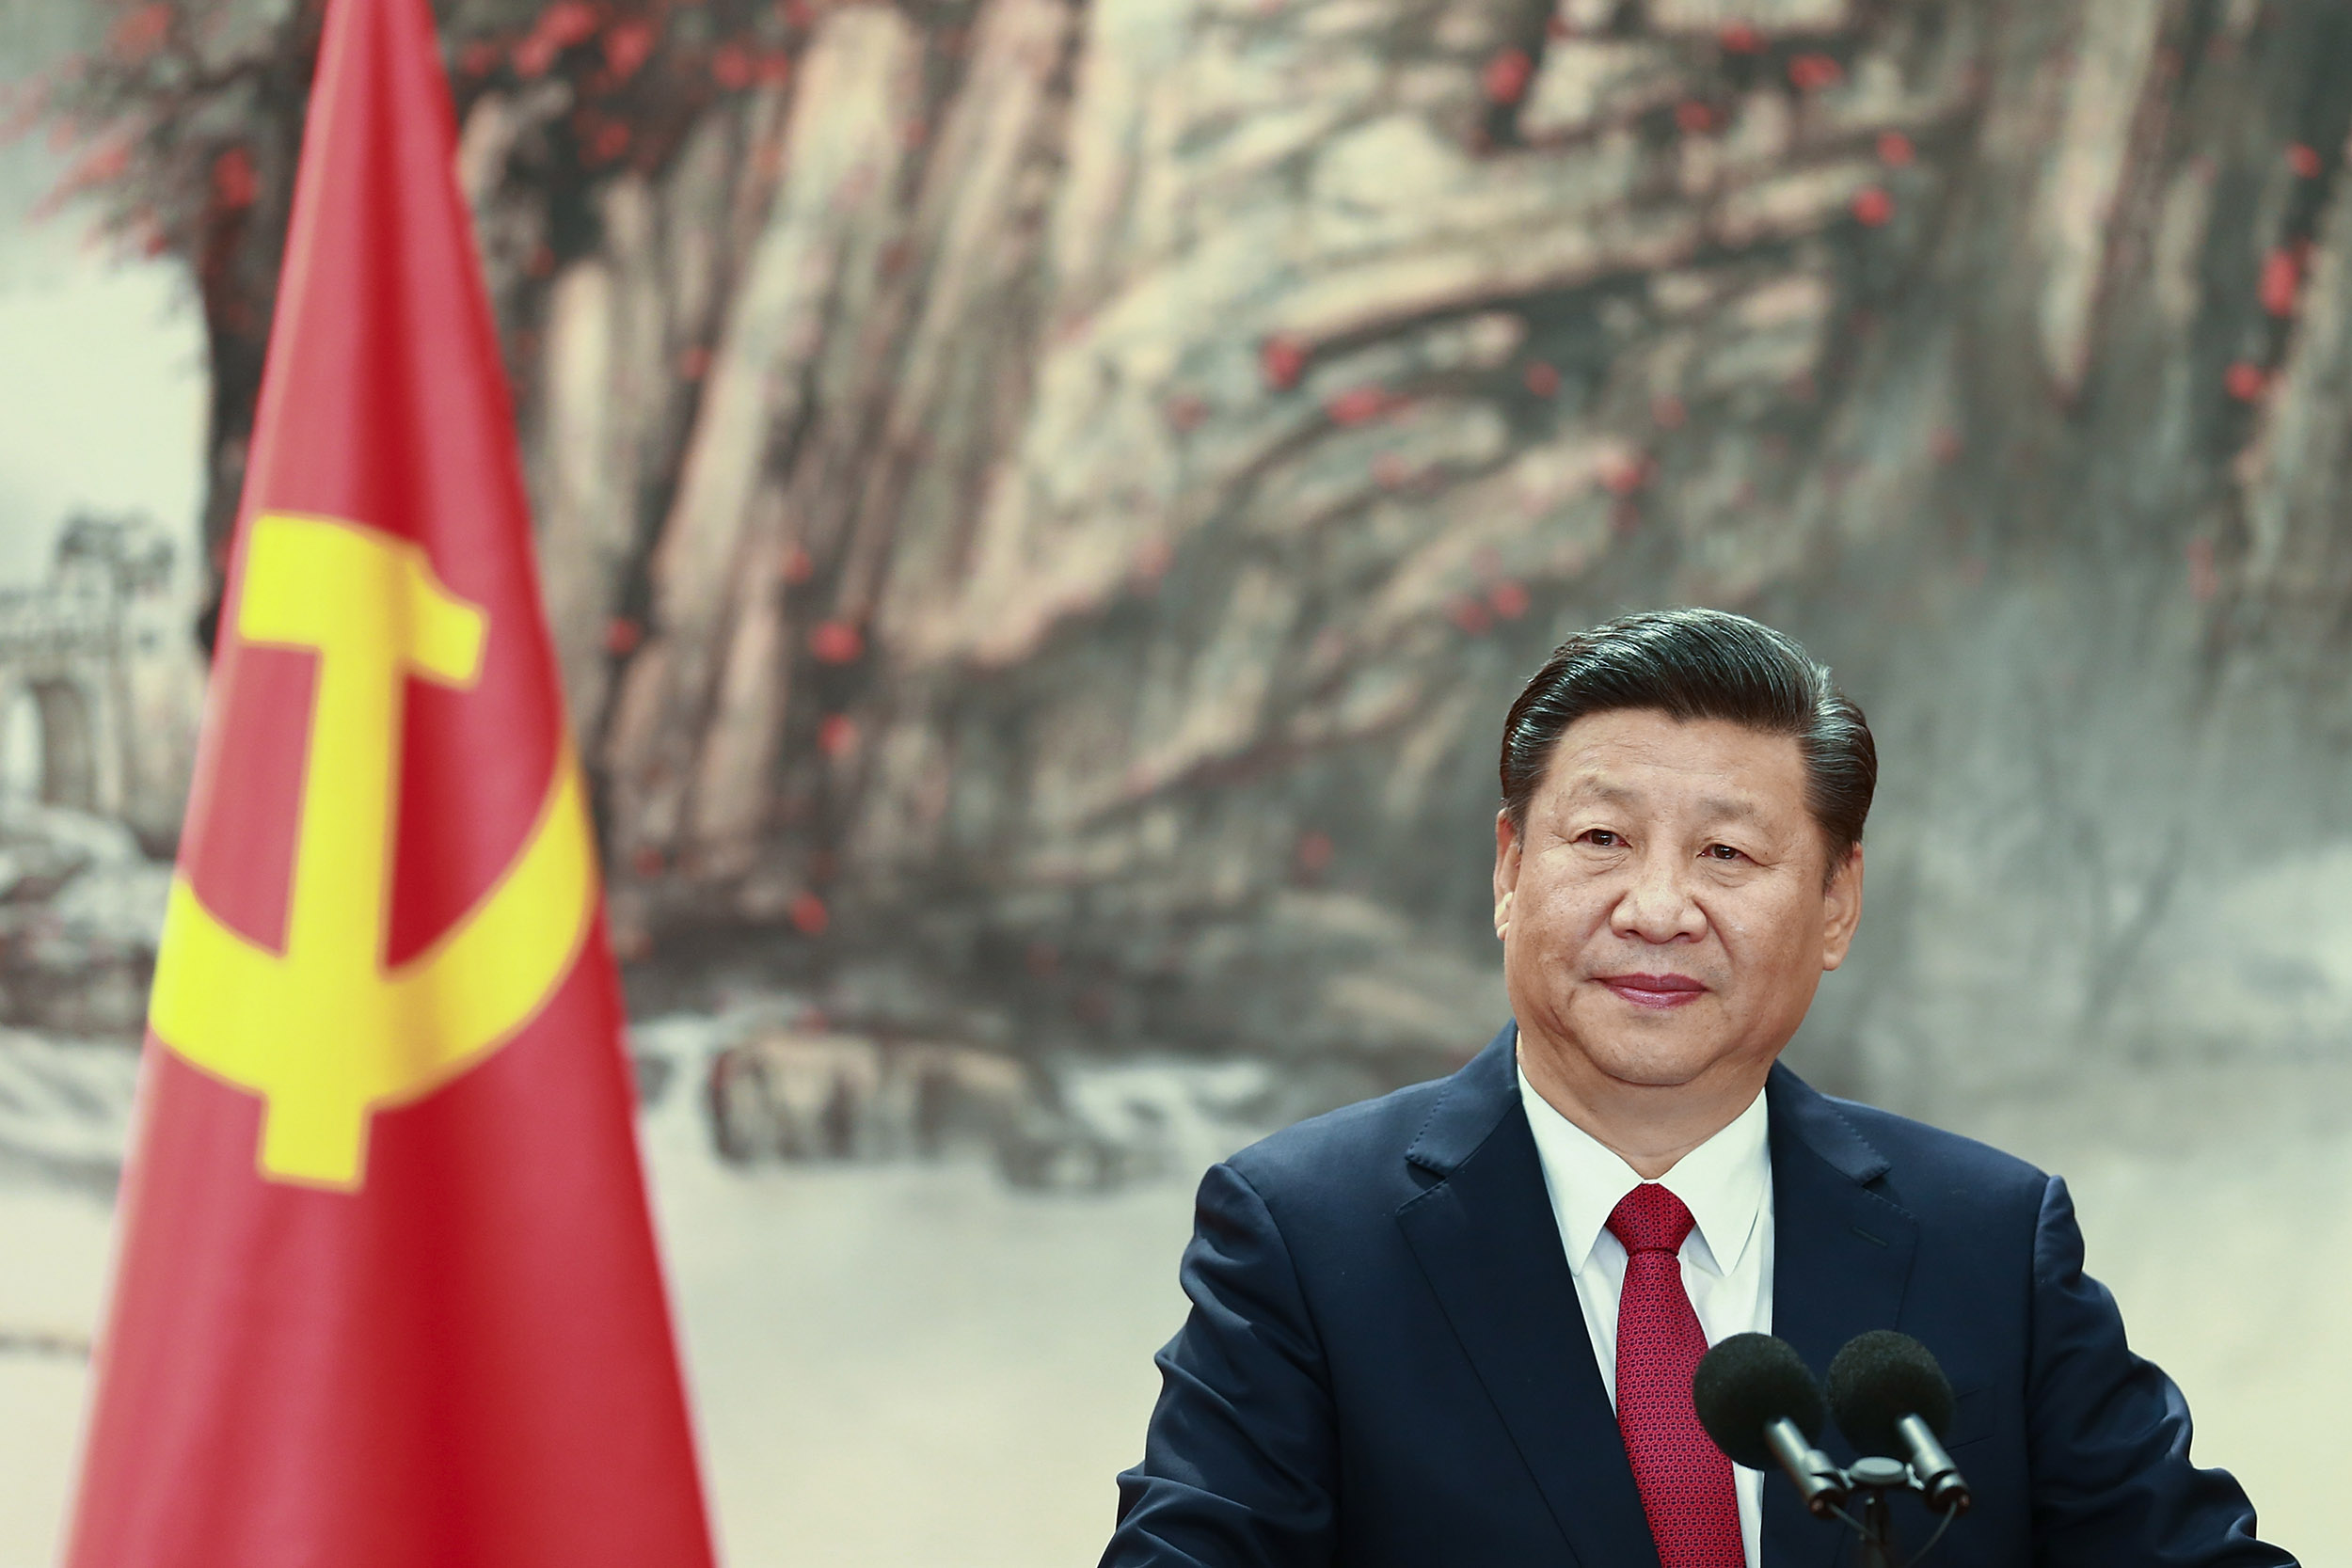 China's Xi warns of 'grim' Taiwan situation in letter to opposition leader